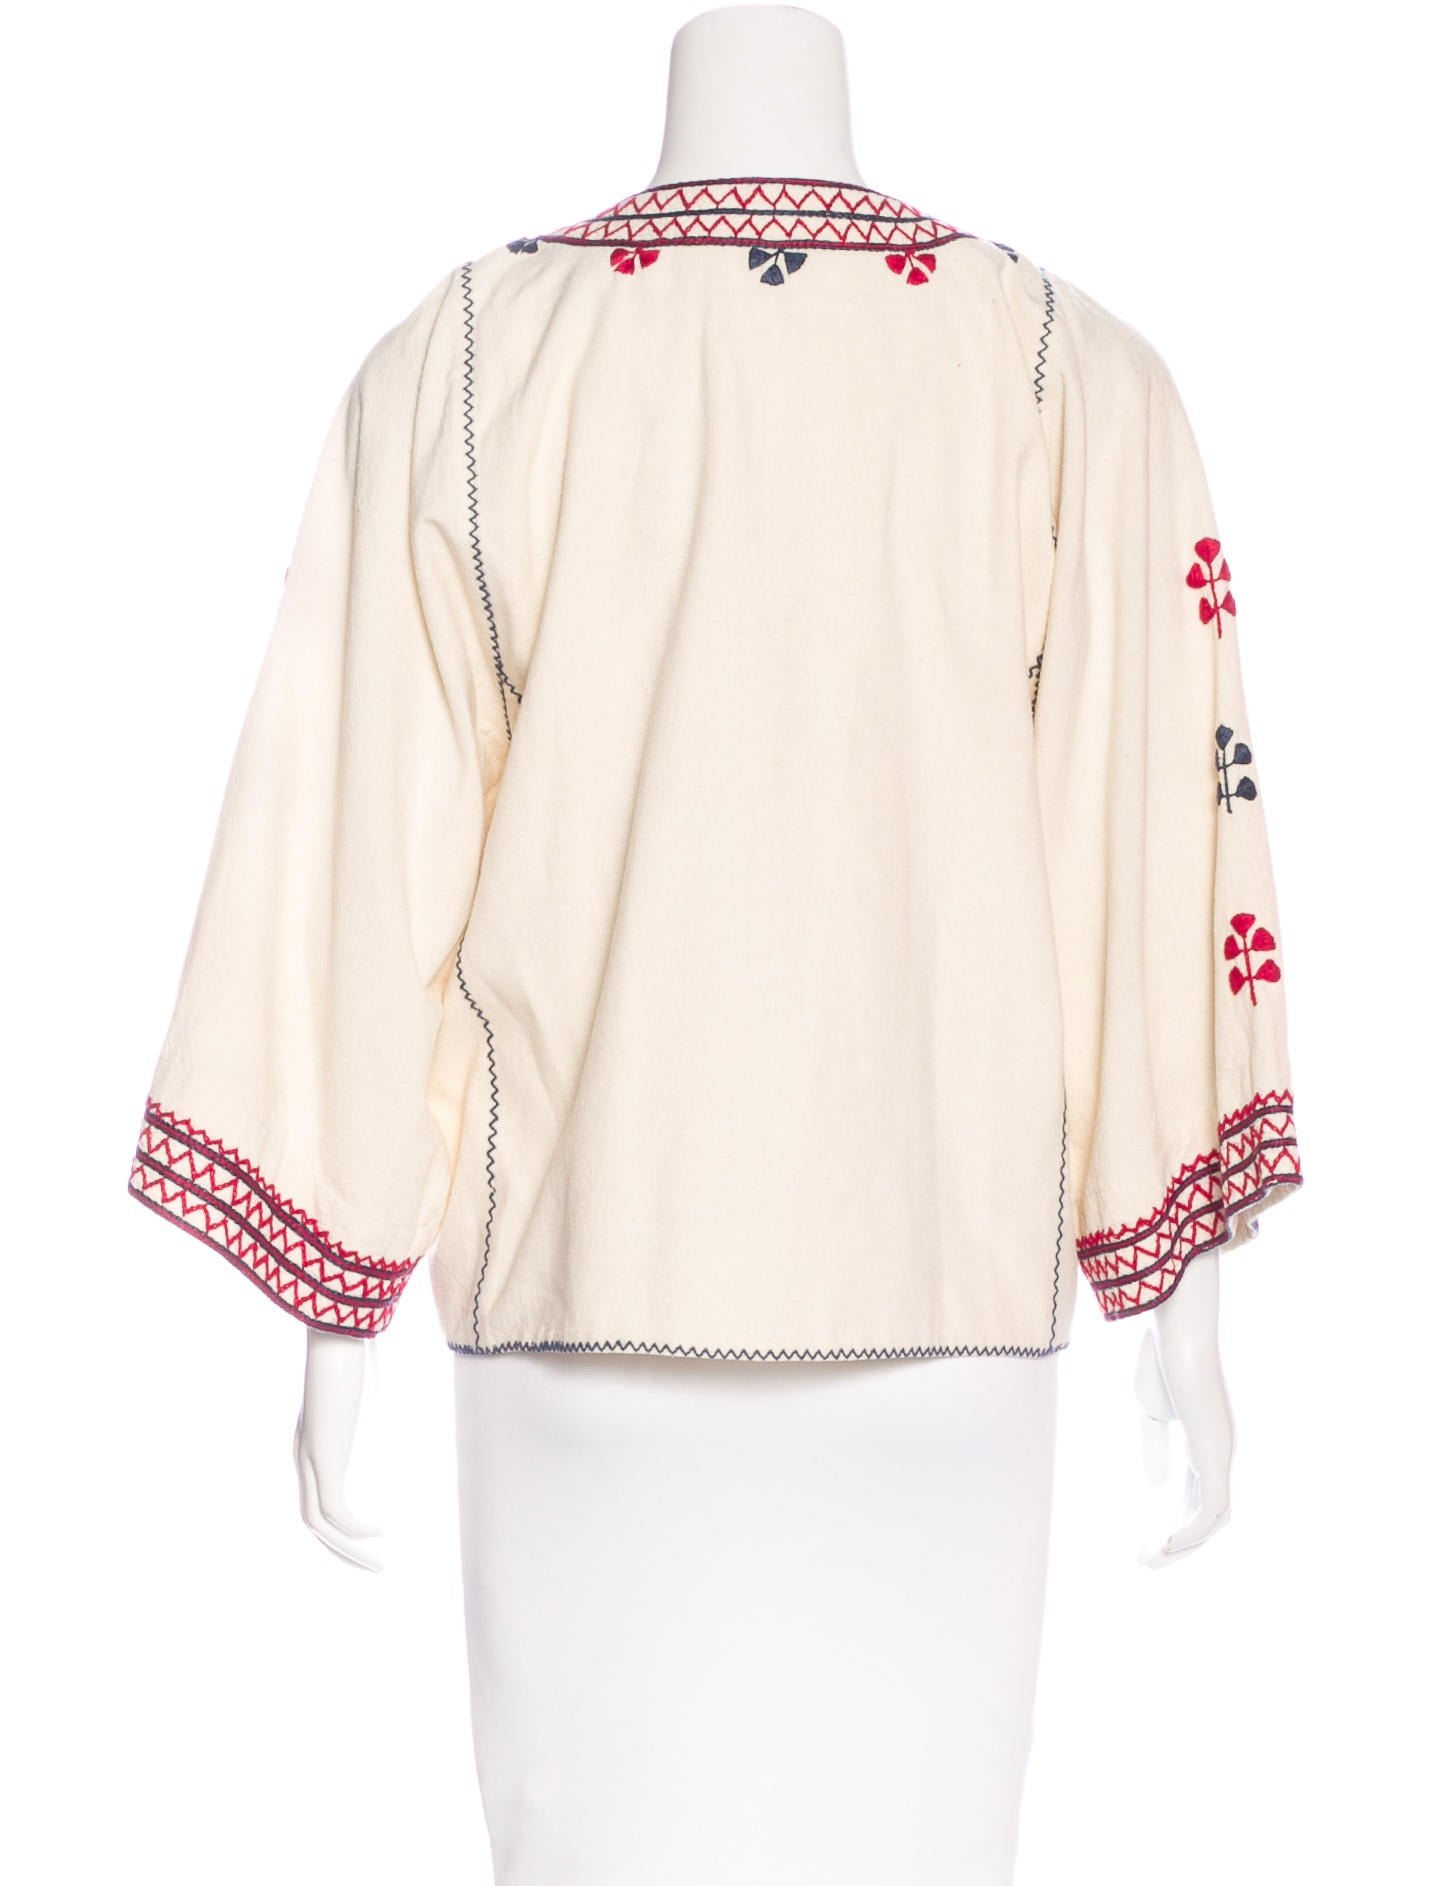 Ulla Johnson Silk Embroidered Jacket - Clothing - WUL22462 | The RealReal